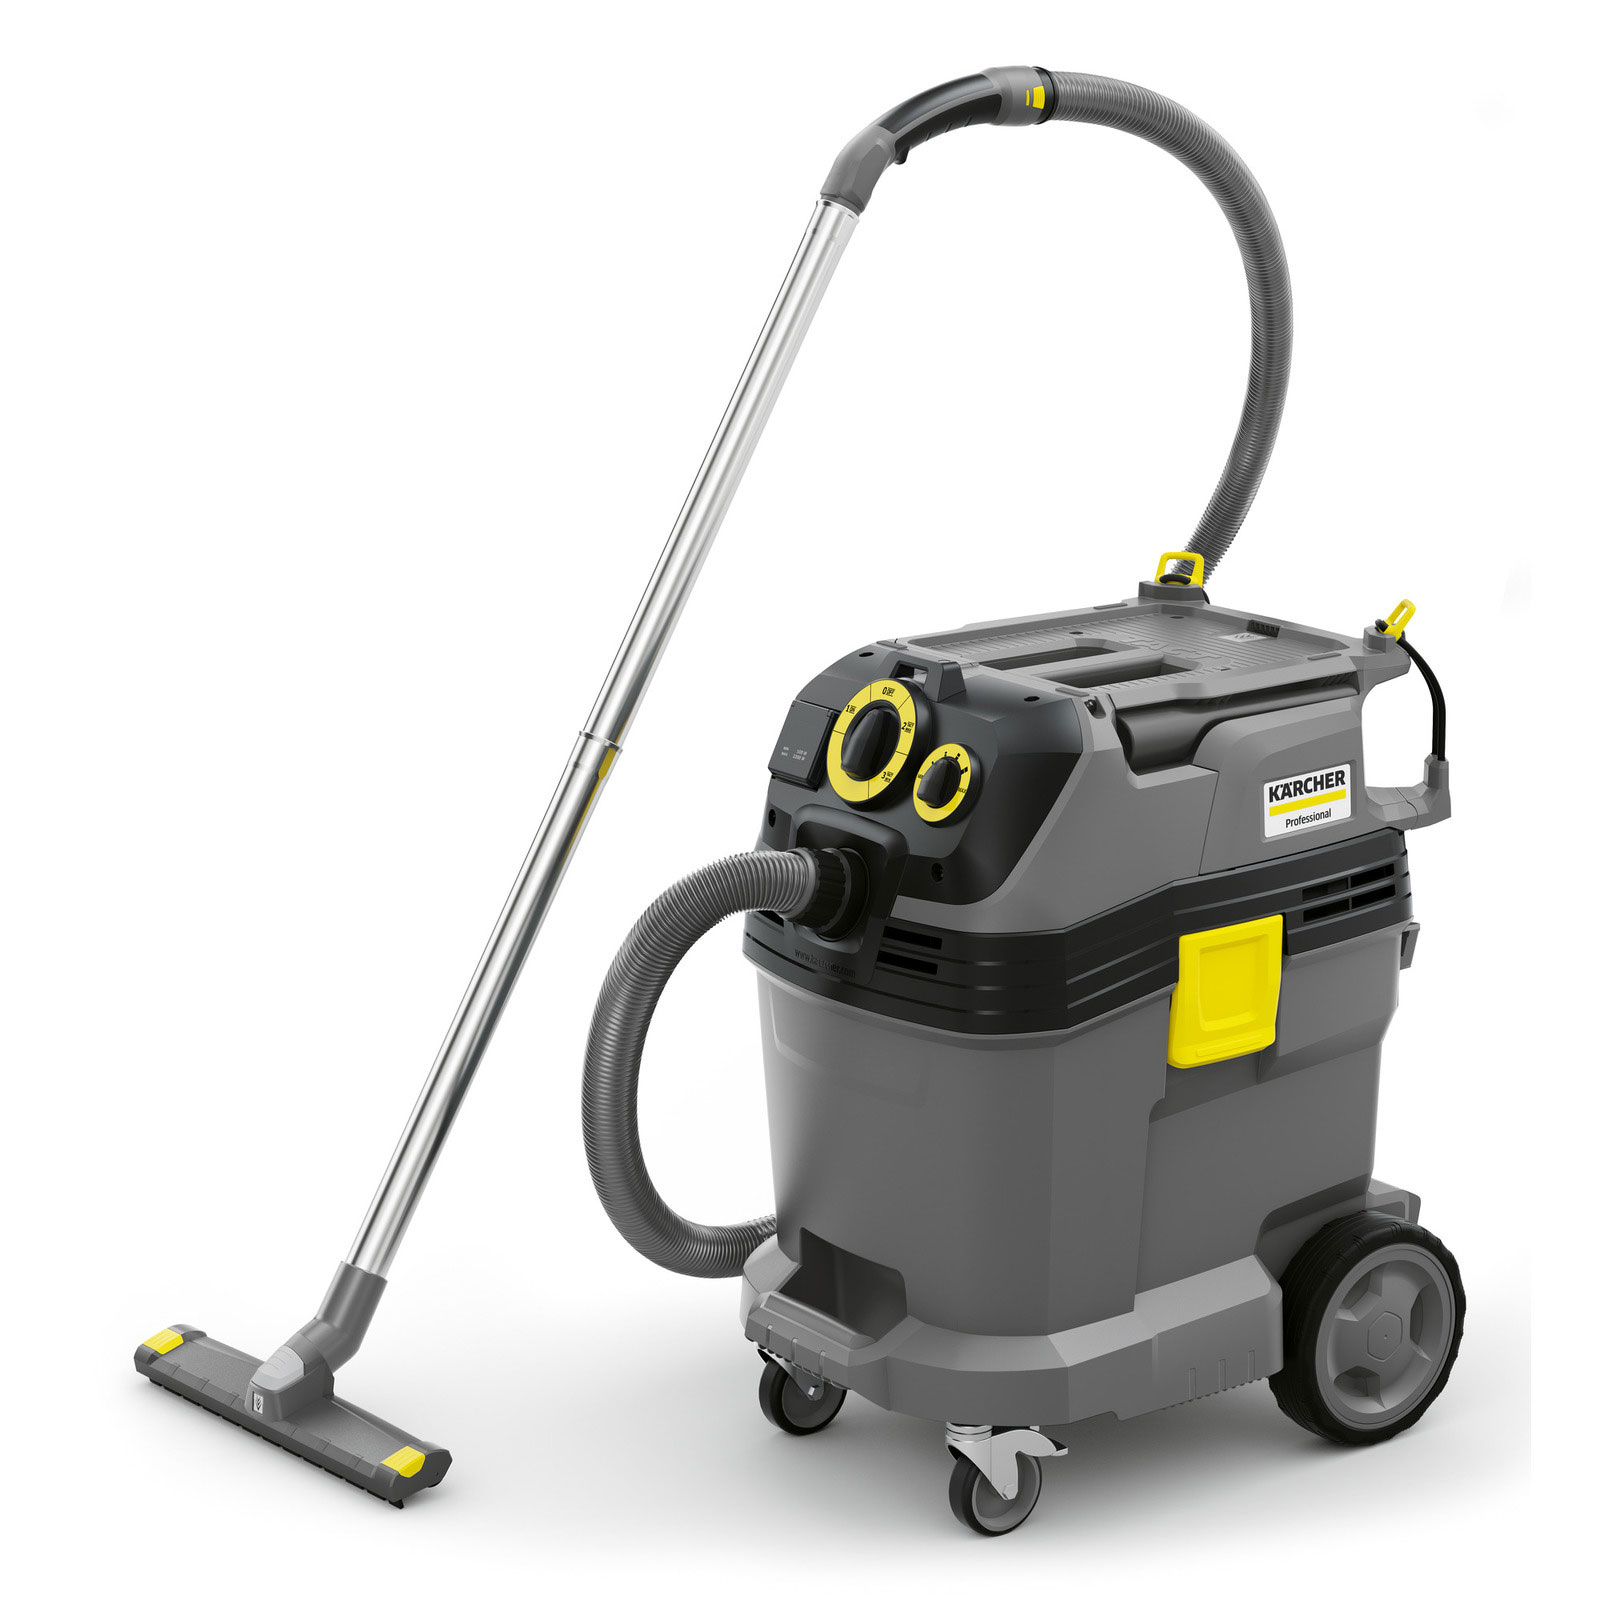 Karcher NT 50/1 Tact Te HEPA with power outlet (automatic on/off switch) and Tact filter cleaning 1.148-416.0 Shop Vacuum FREE Shipping